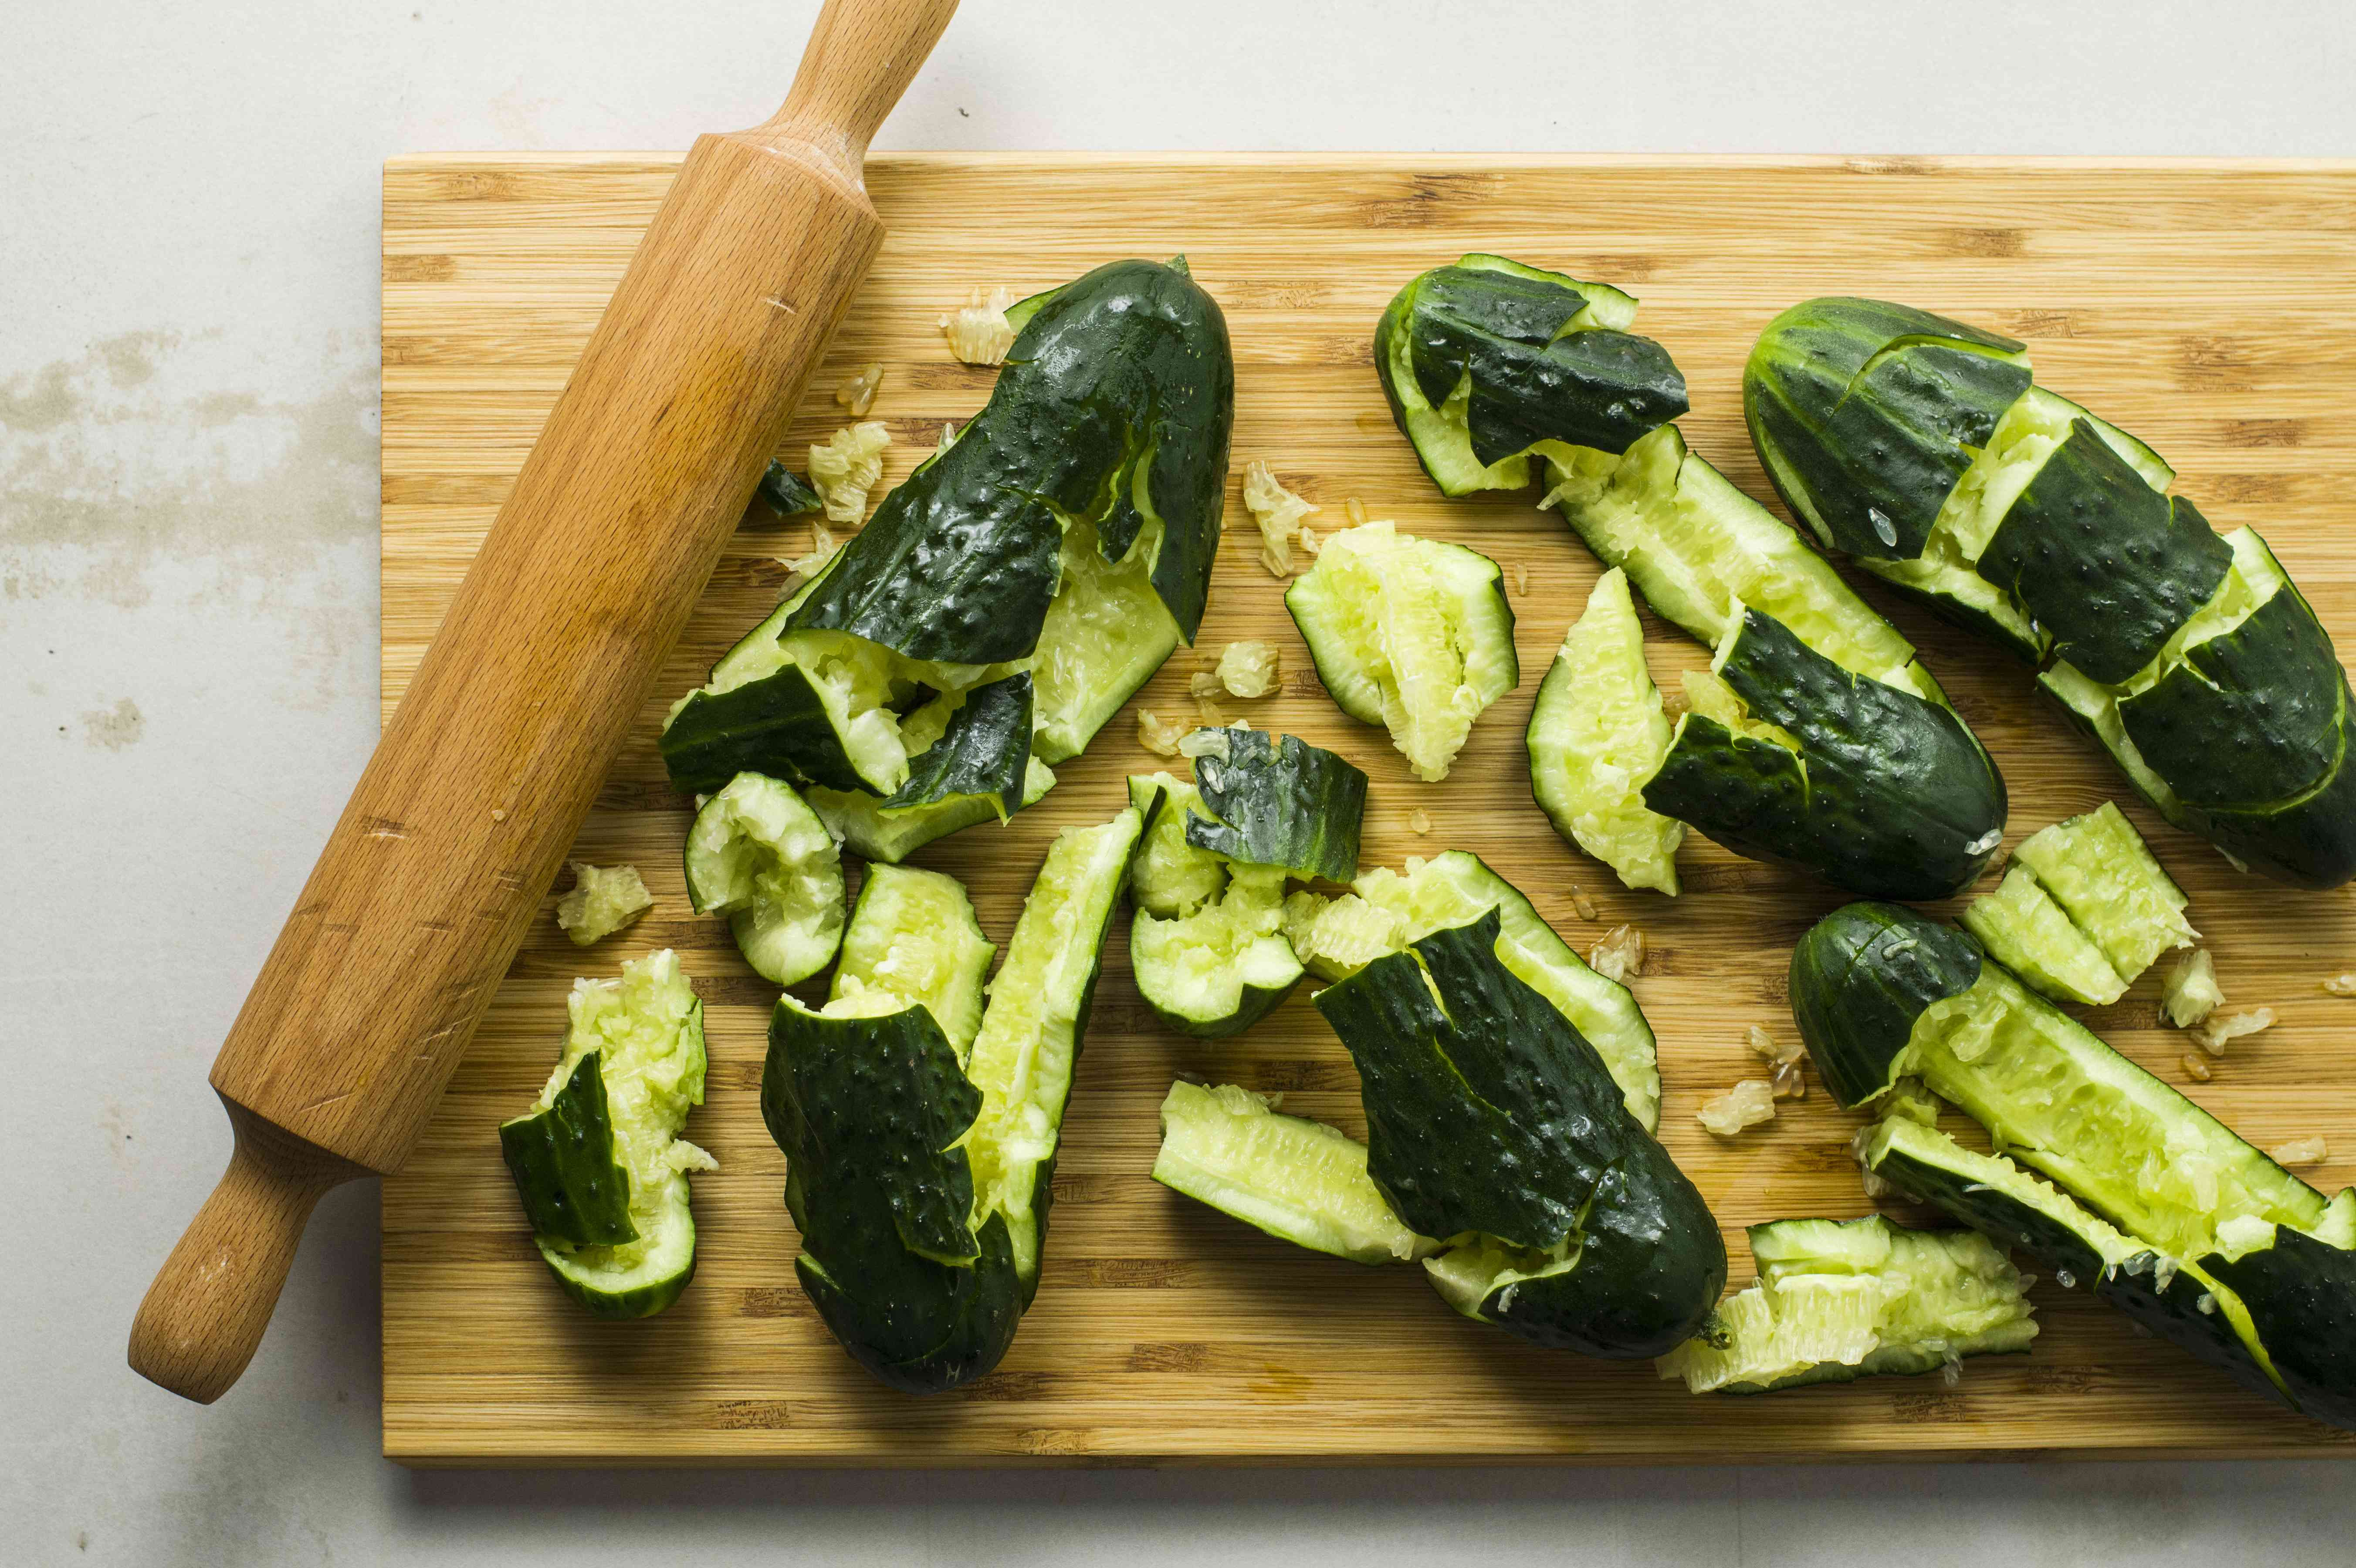 Cucumbers smashed on a cutting board by a rolling pin